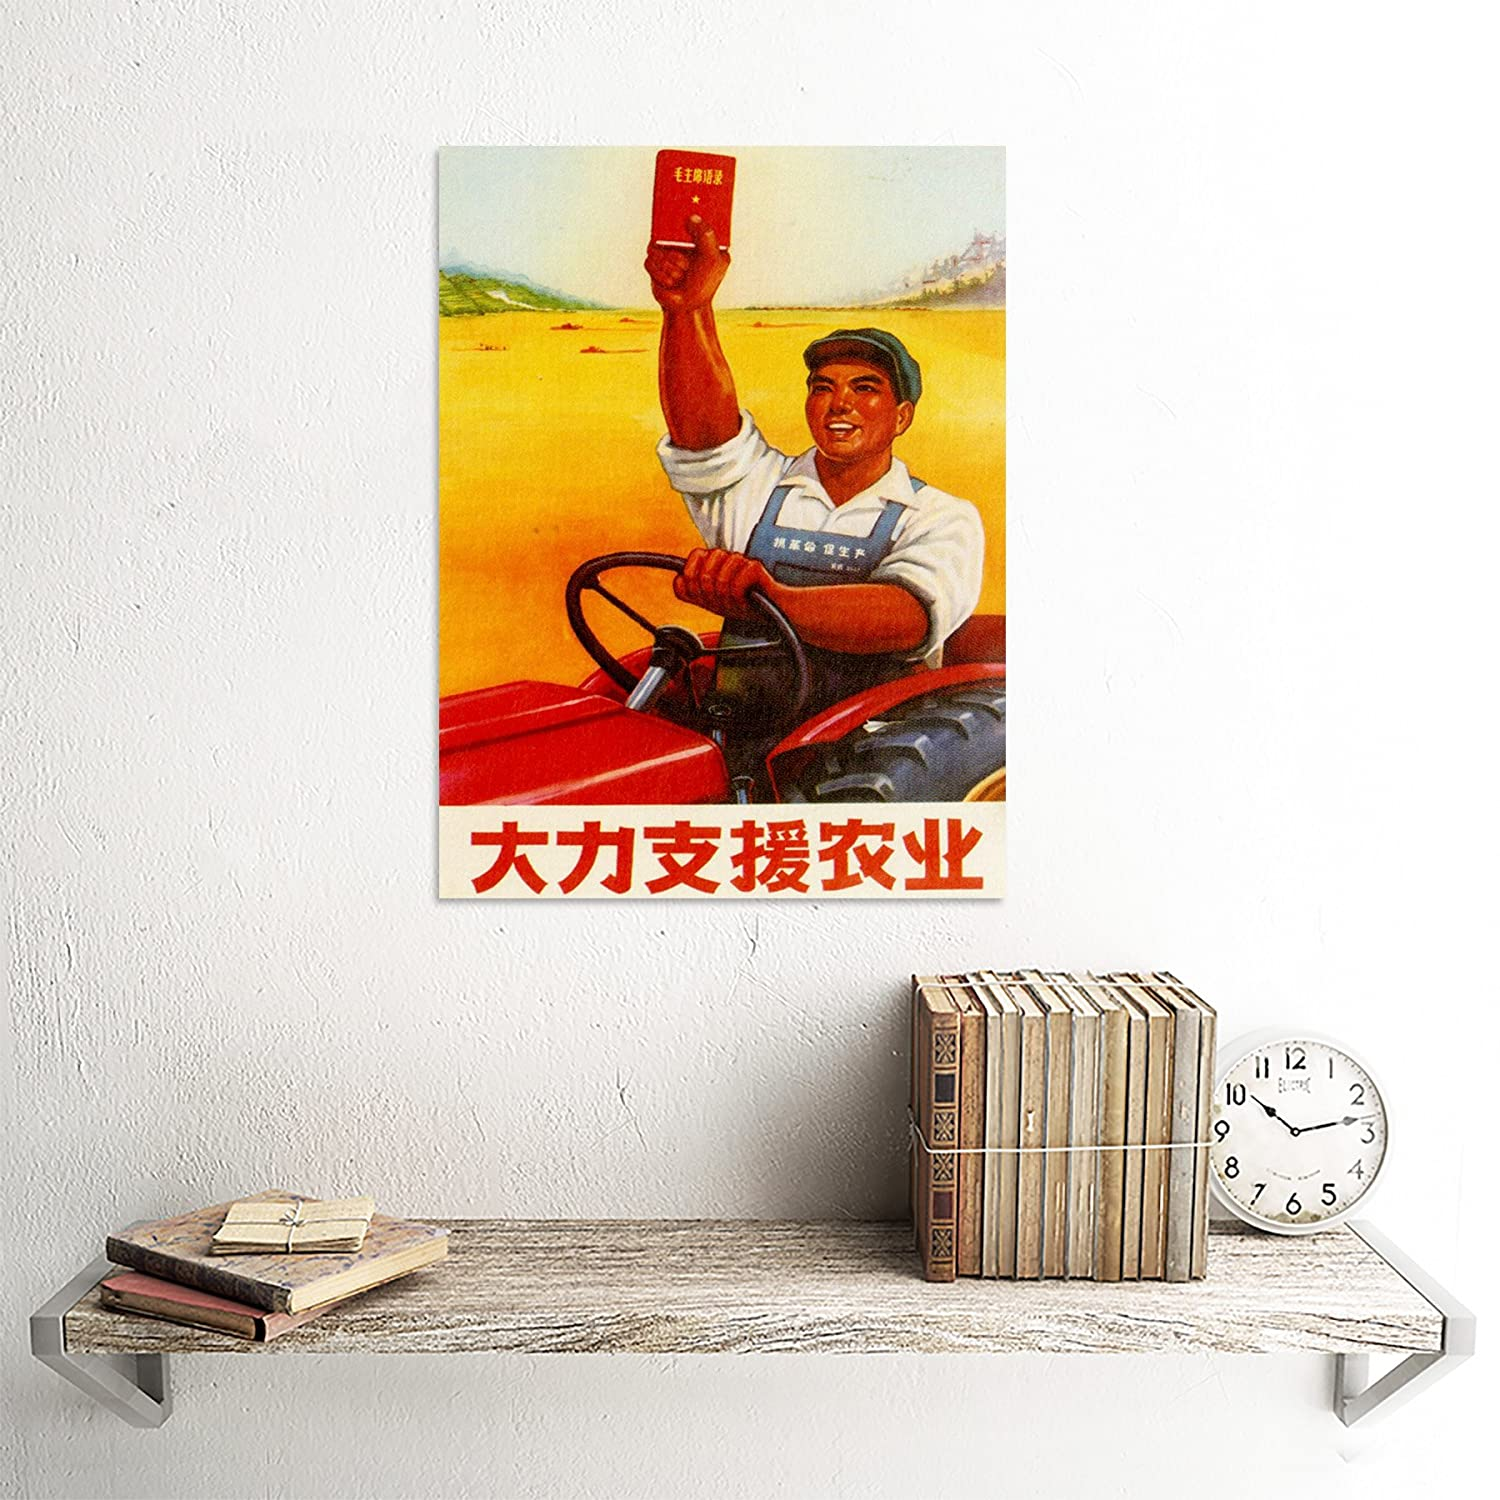 Propaganda Political Communist China Support Farm Mao Baby Music Cellular Phone Red Book Poster Bb8189b Prints Posters